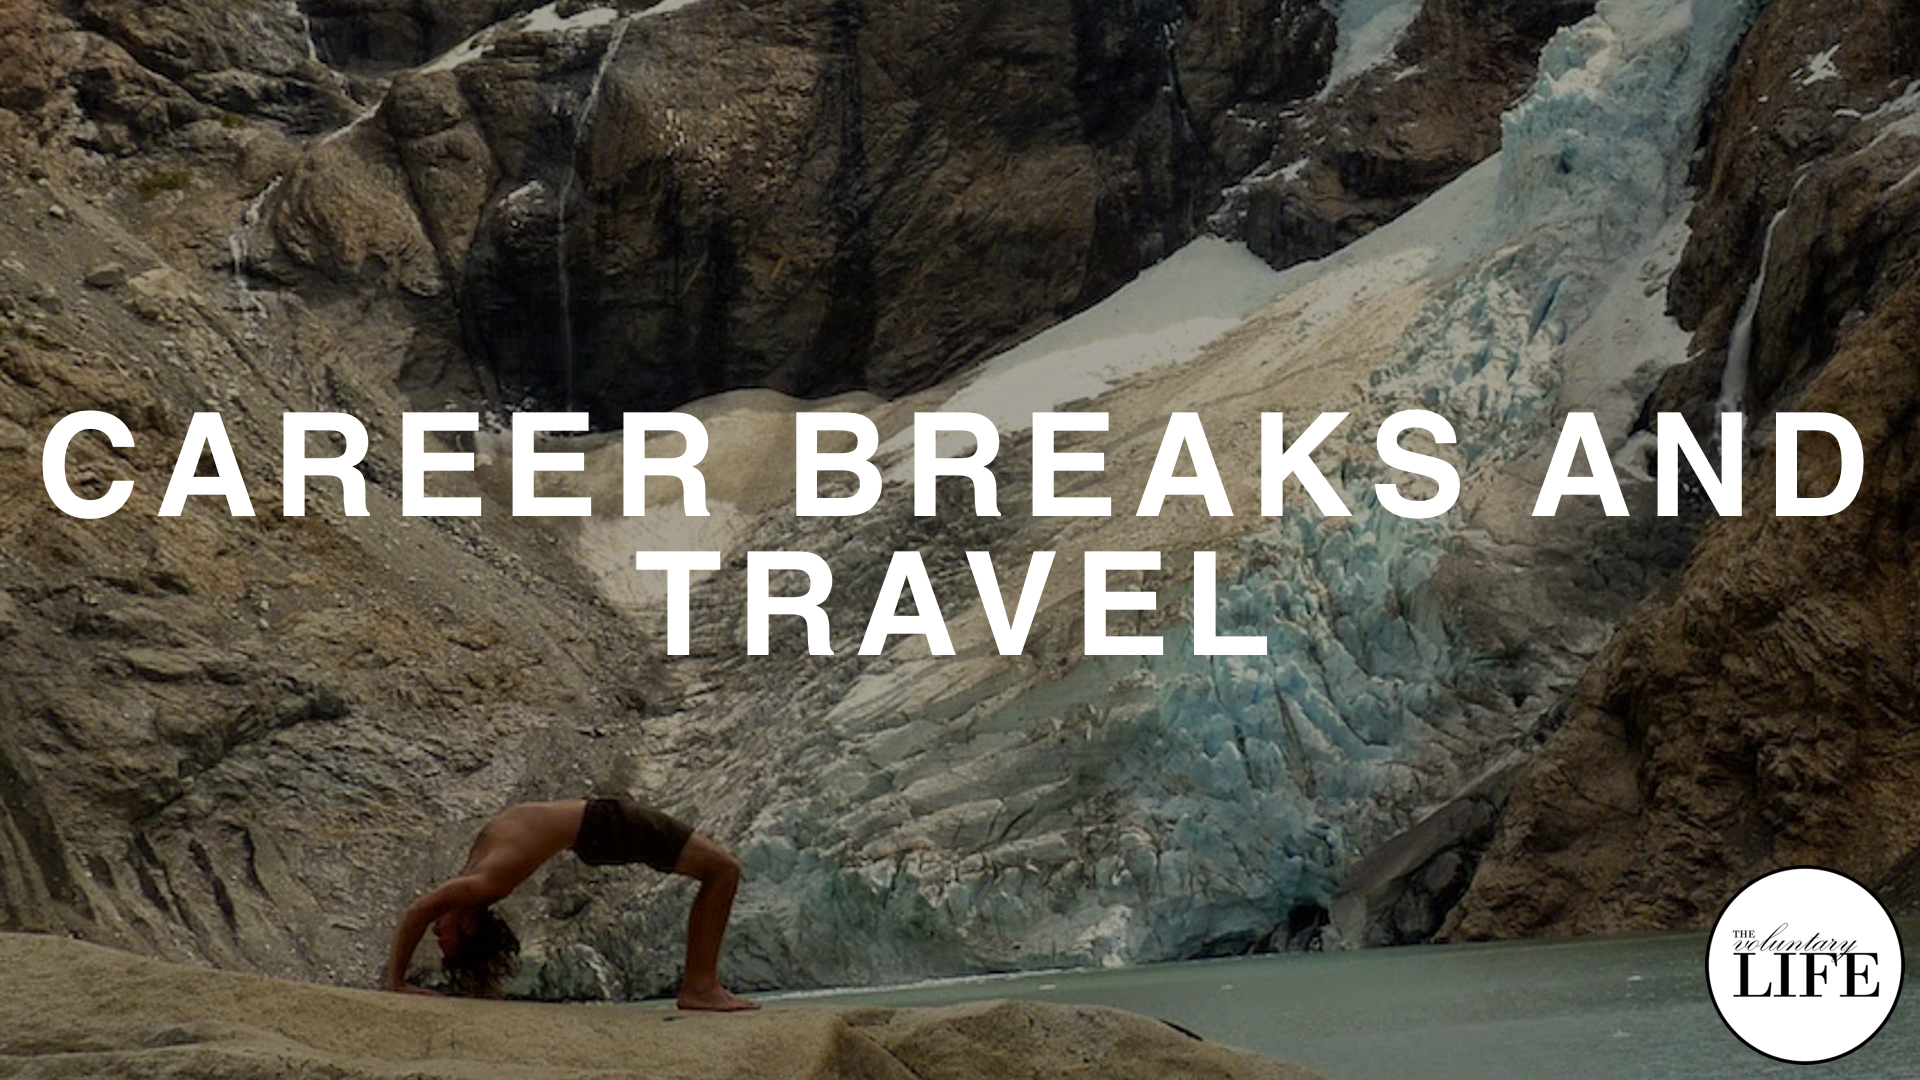 149 Career Breaks and Travel